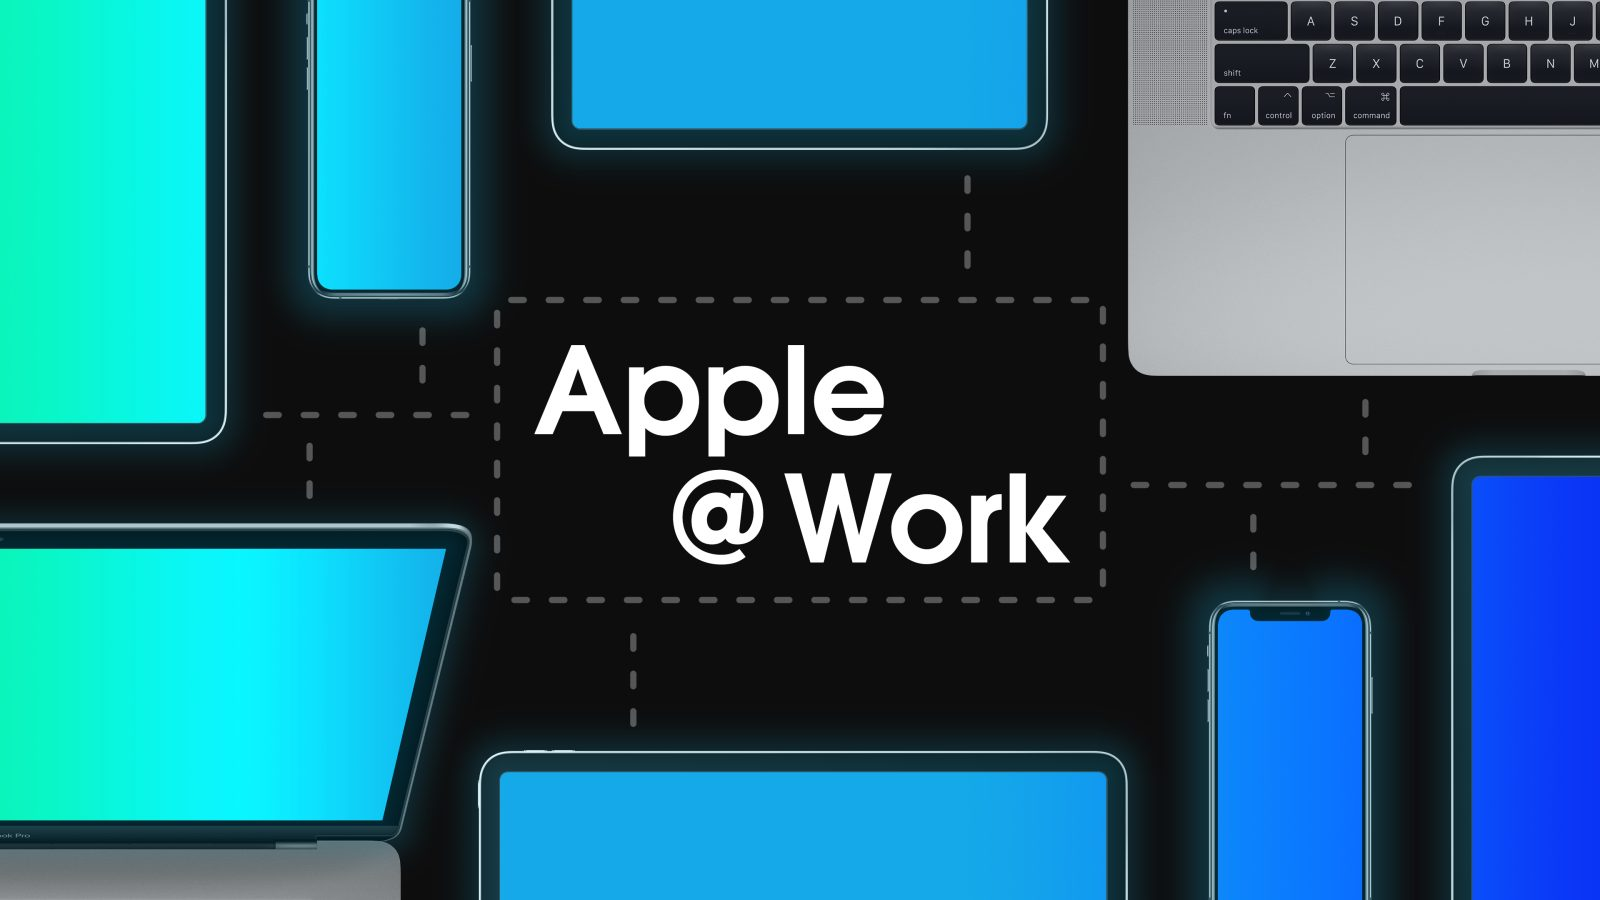 Introducing Apple @ Work, a new 9to5Mac series covering Apple in the enterprise